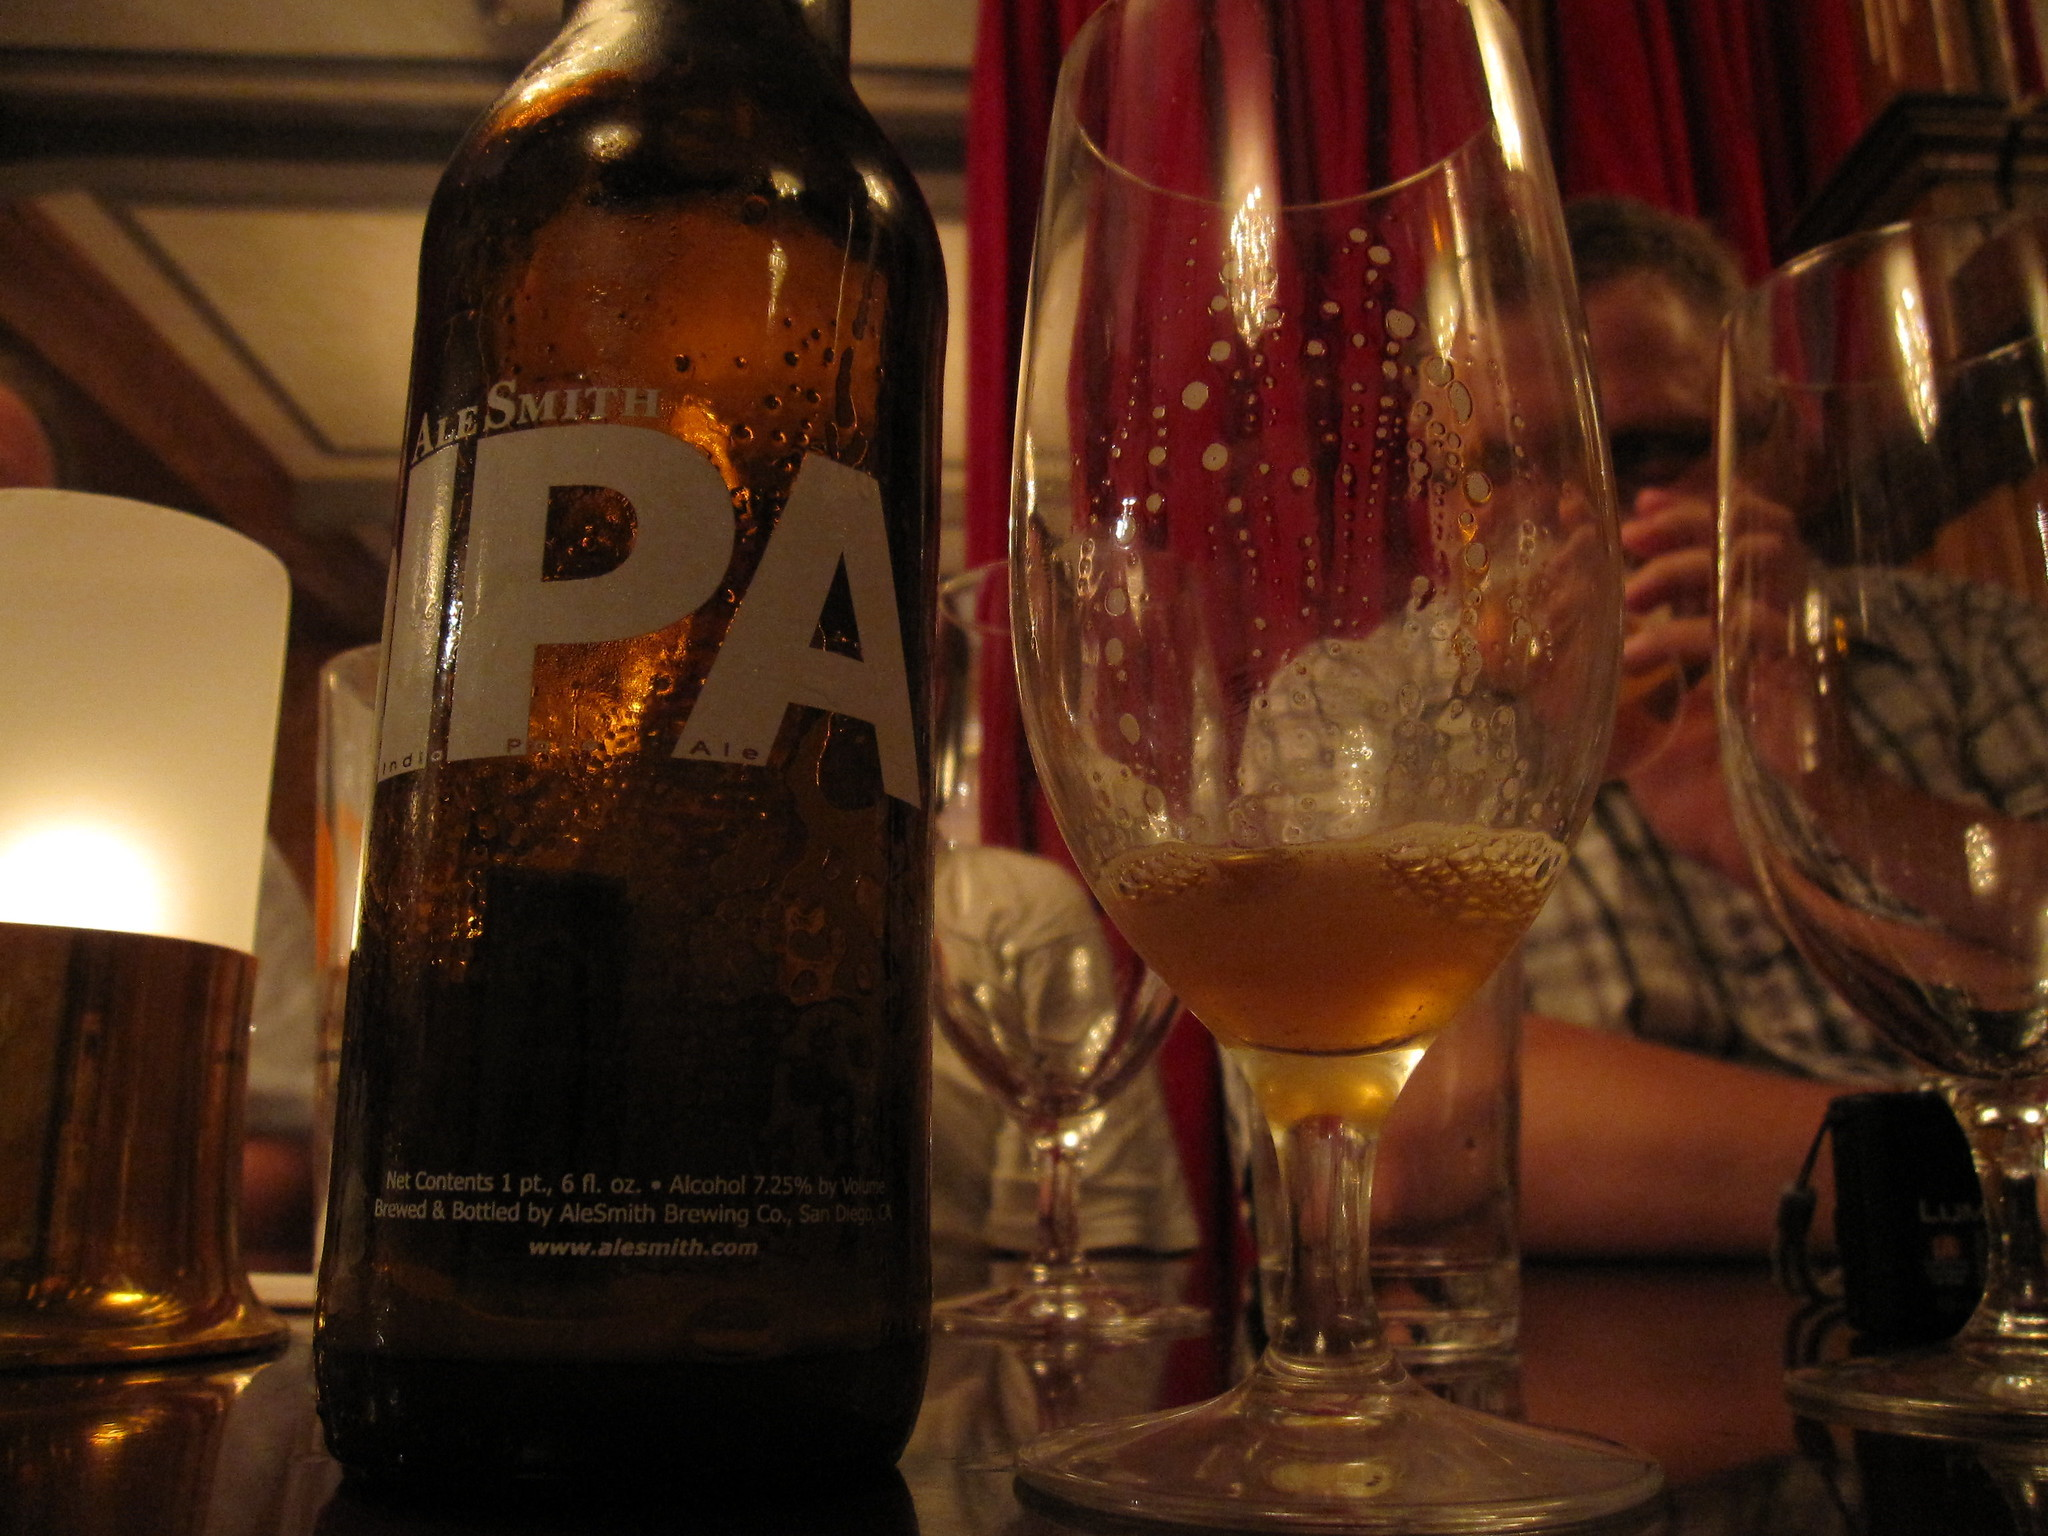 A bottle of beer and empty glasses with a man drinking a pint behind